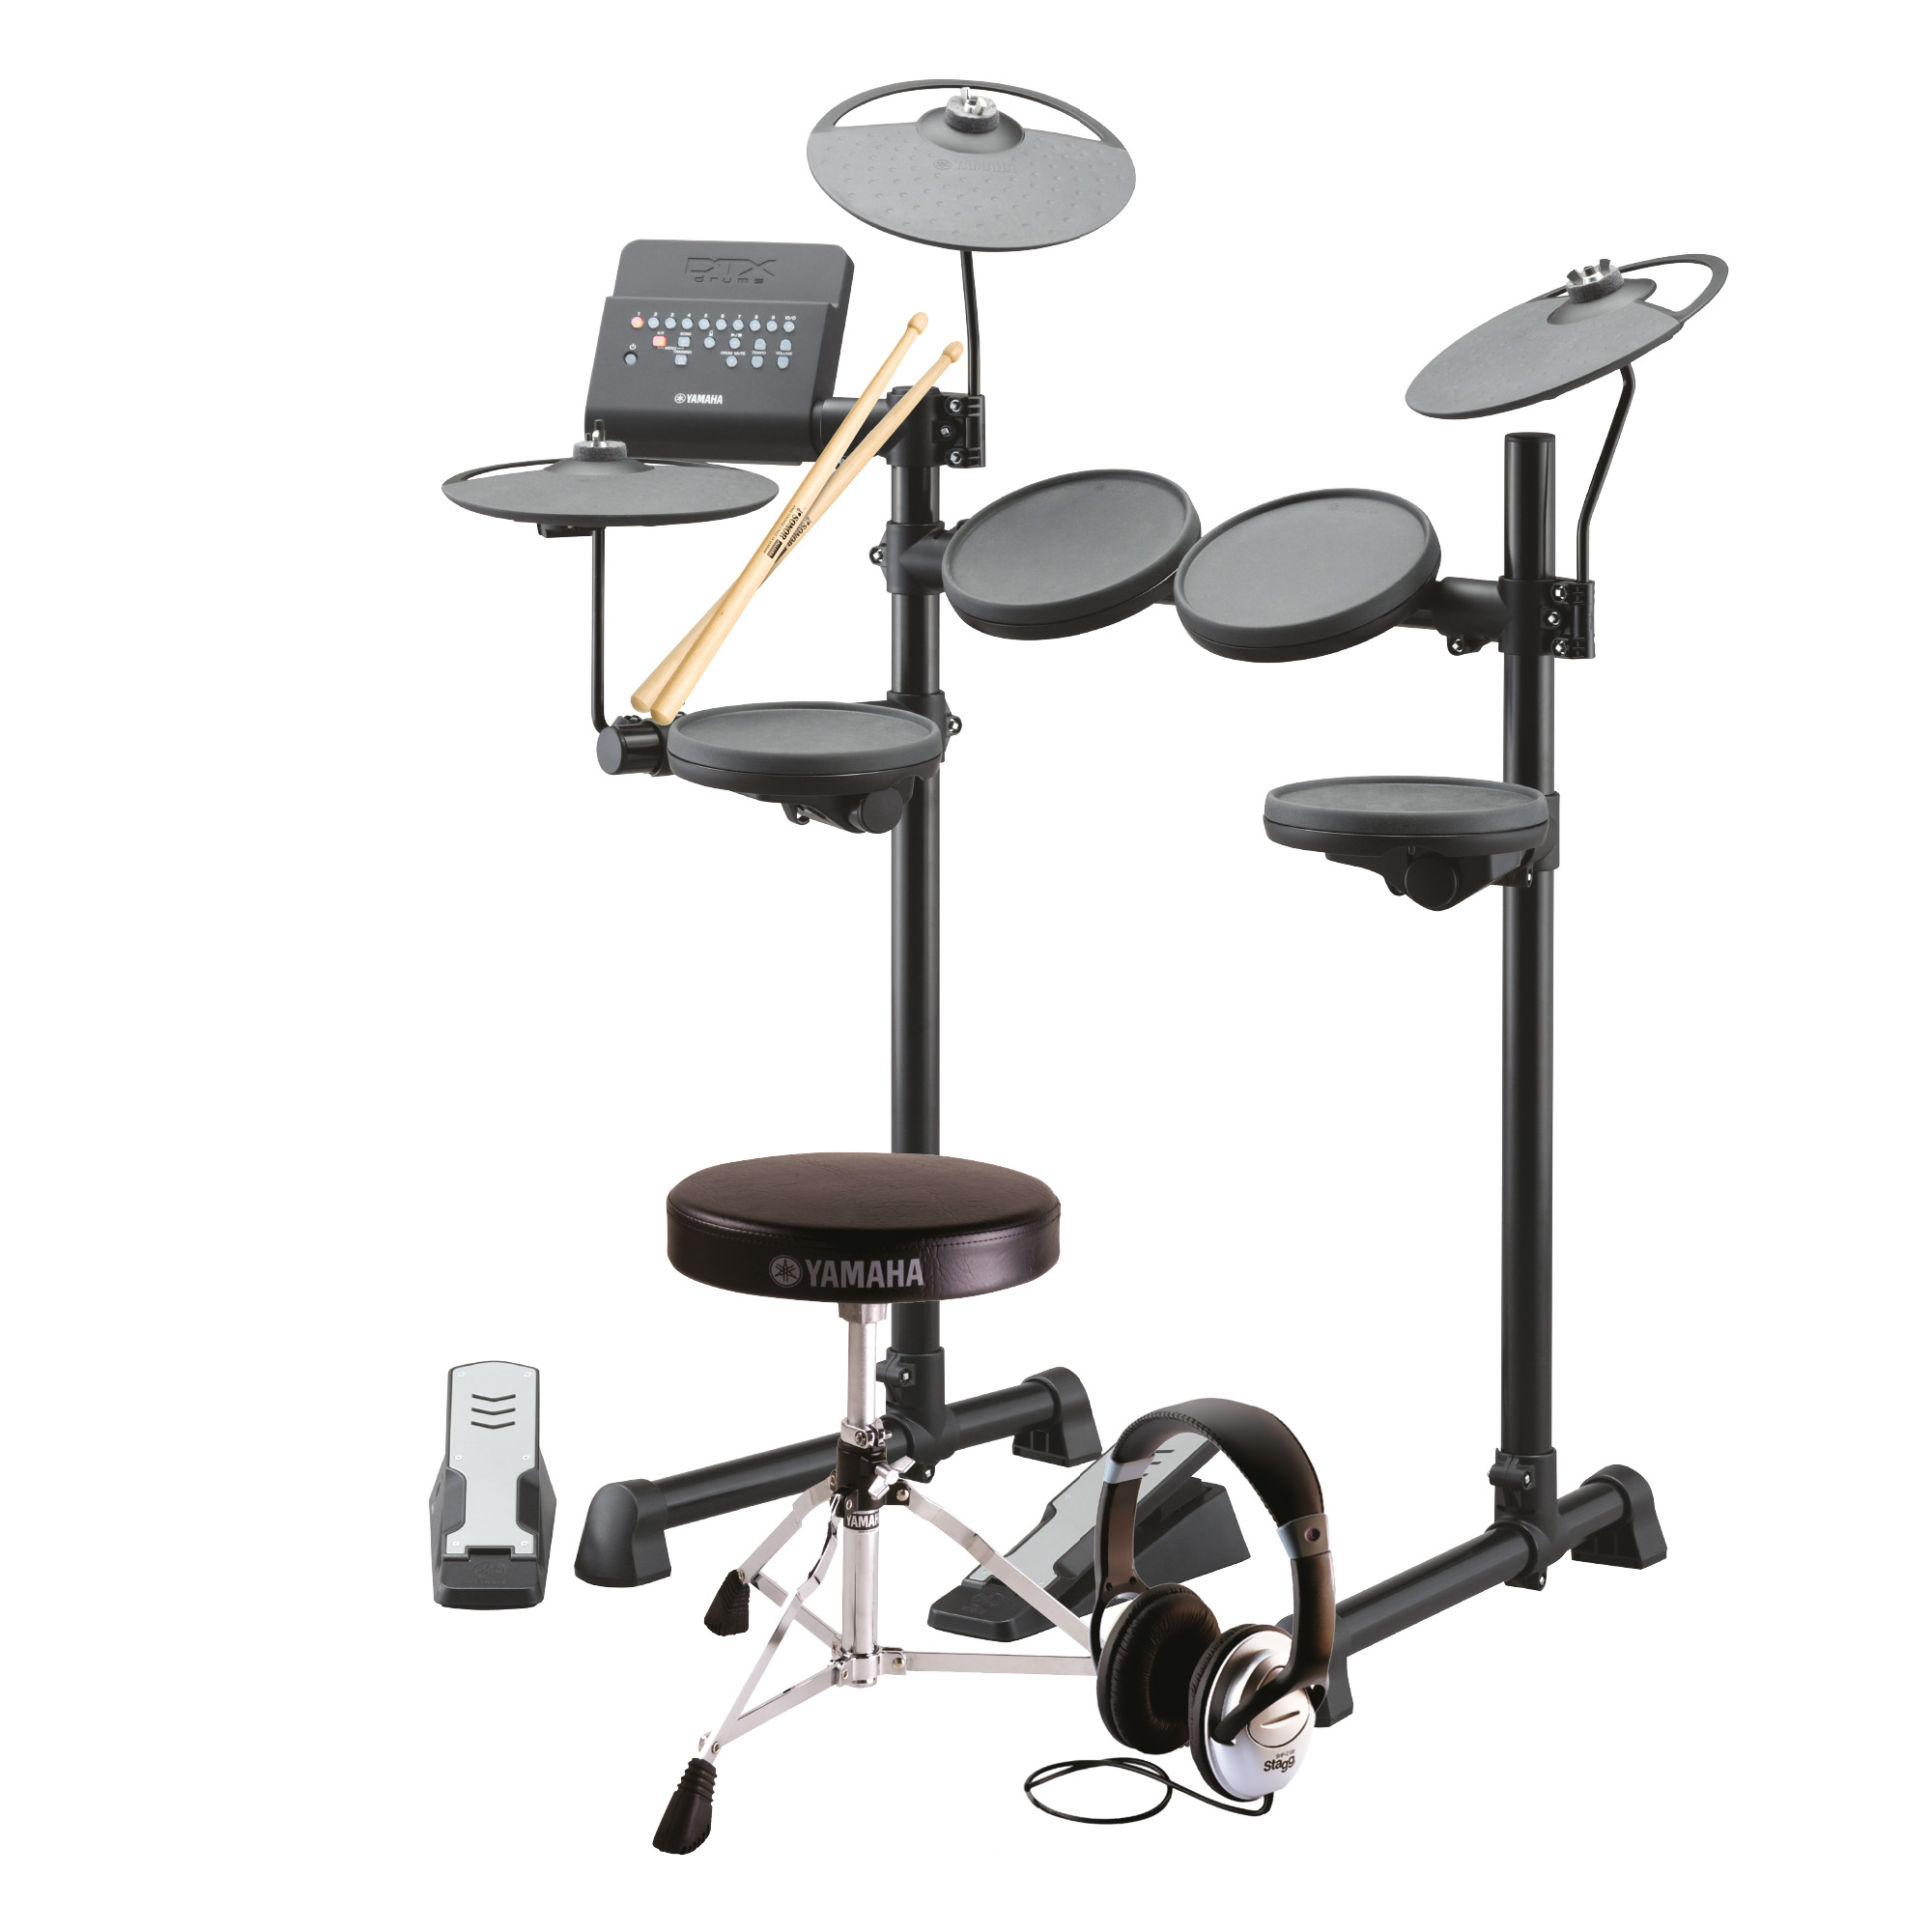 Yamaha beginner dtx400k electronic drum pack with for Yamaha dtx400k accessories